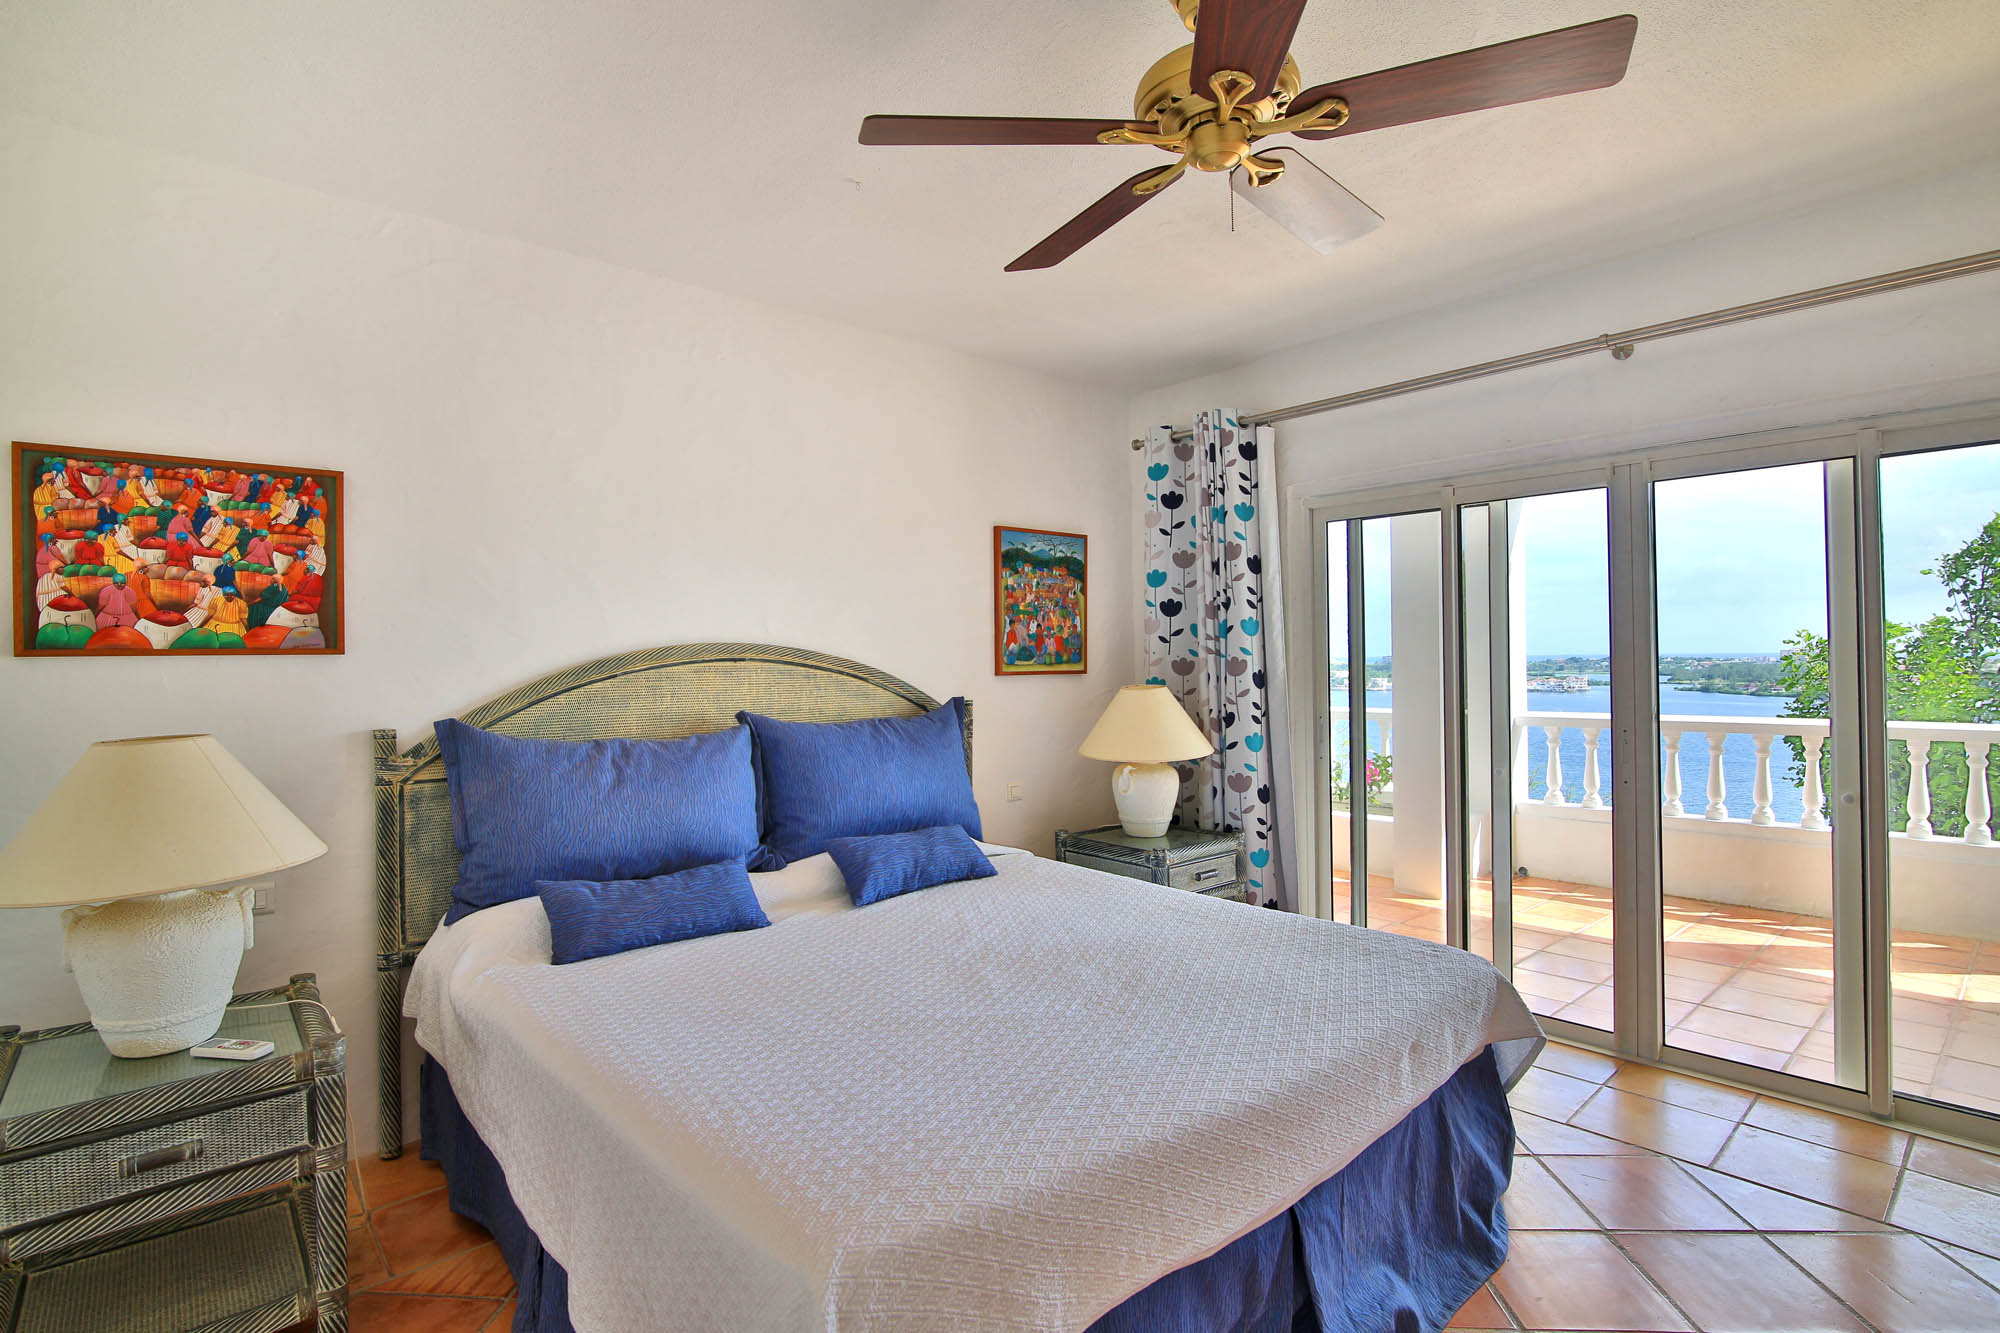 Wake up to the refreshing breeze off the Caribbean Sea at Escapade villa rental, Caribbean.